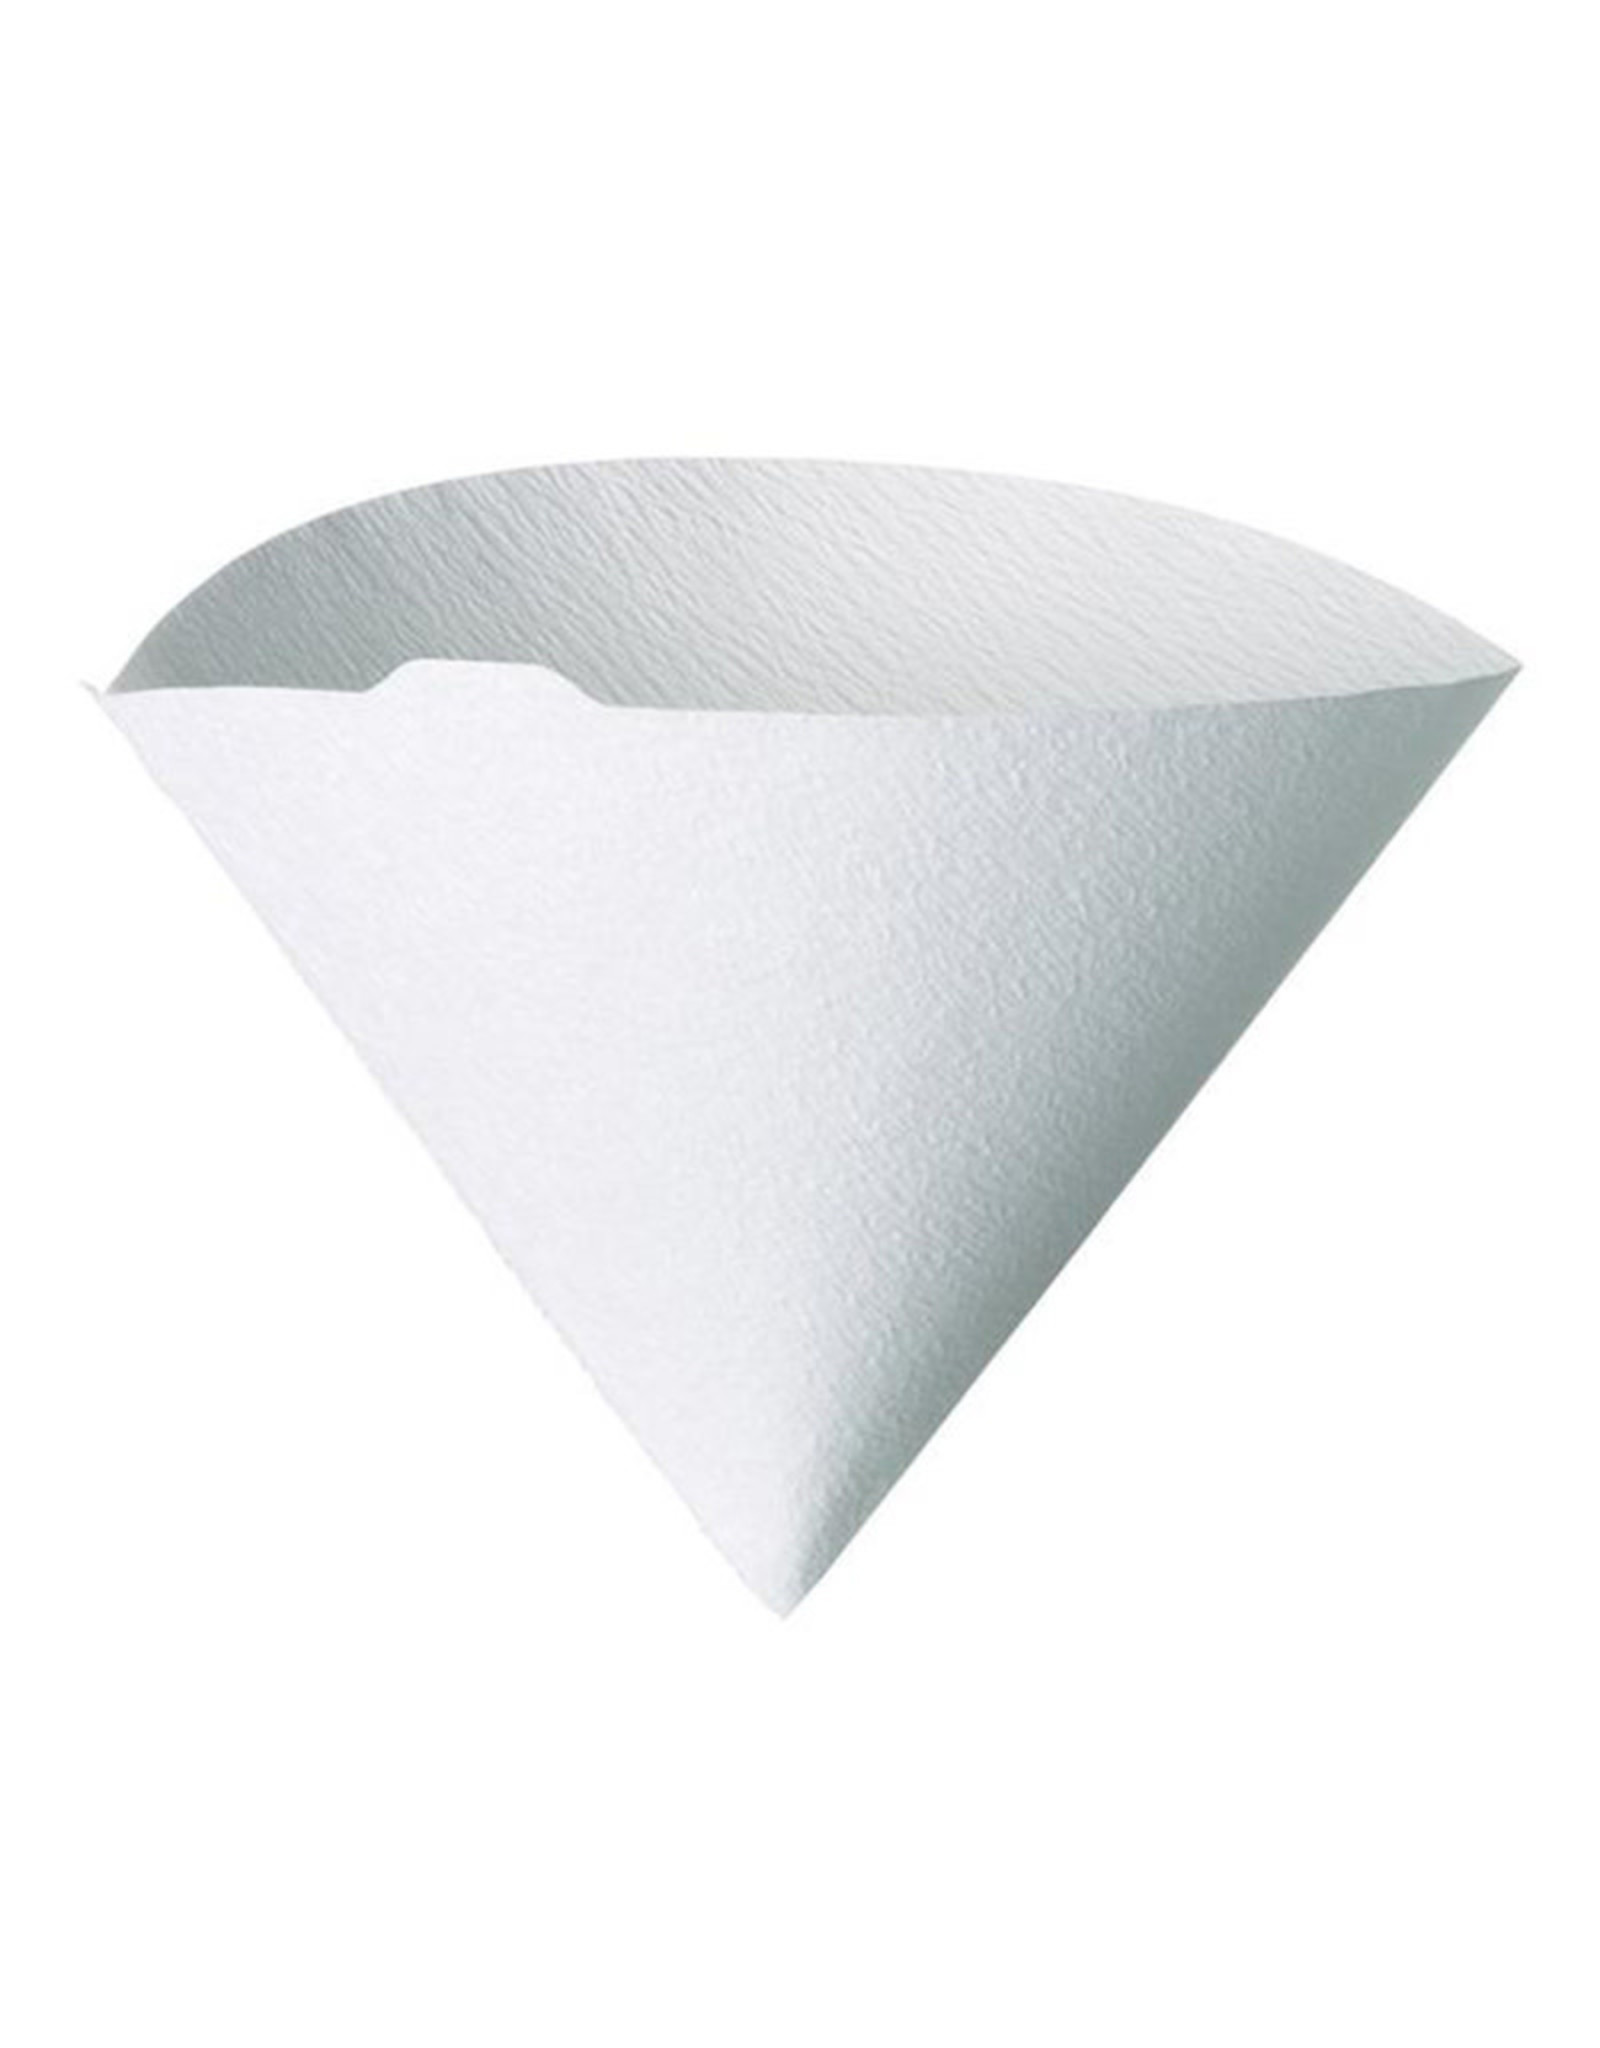 Hario Coffee Paper Filter - 100 Pack